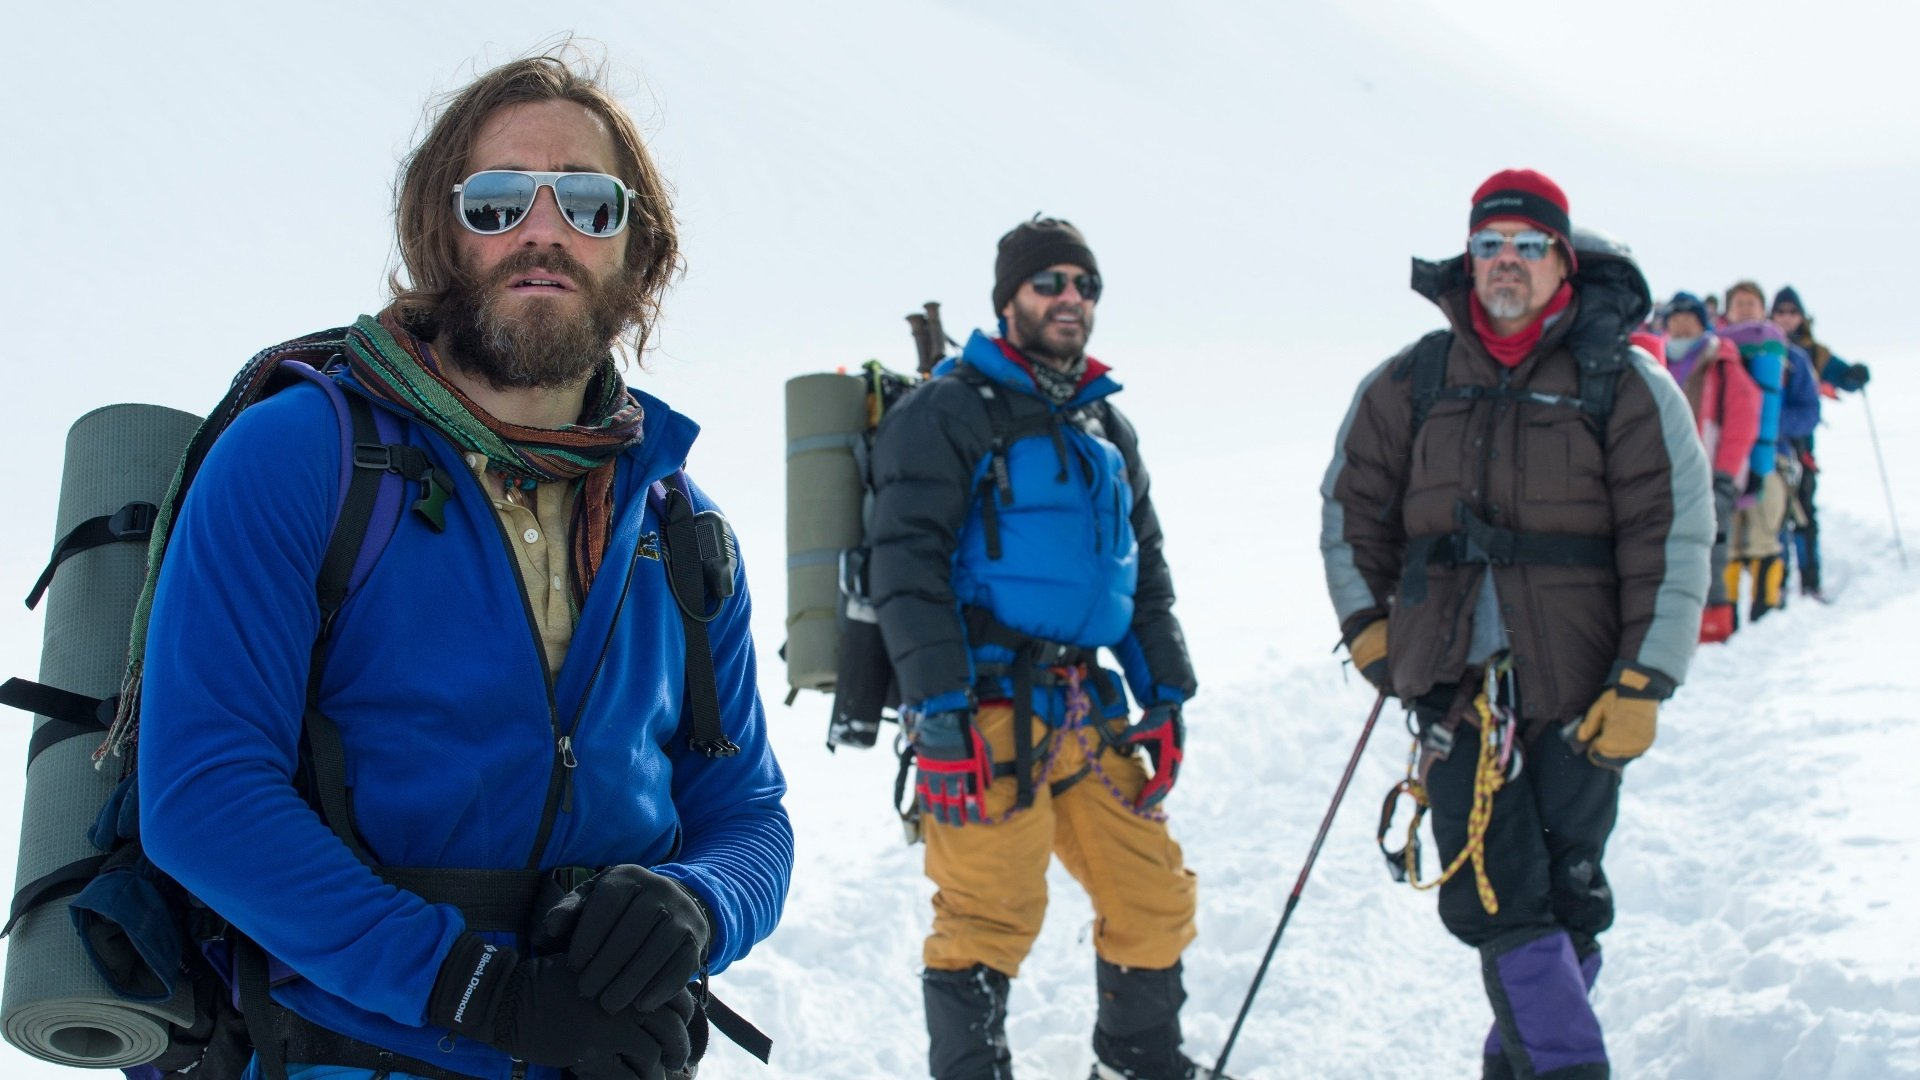 Everest (2015) – Filmy o wspinaczce